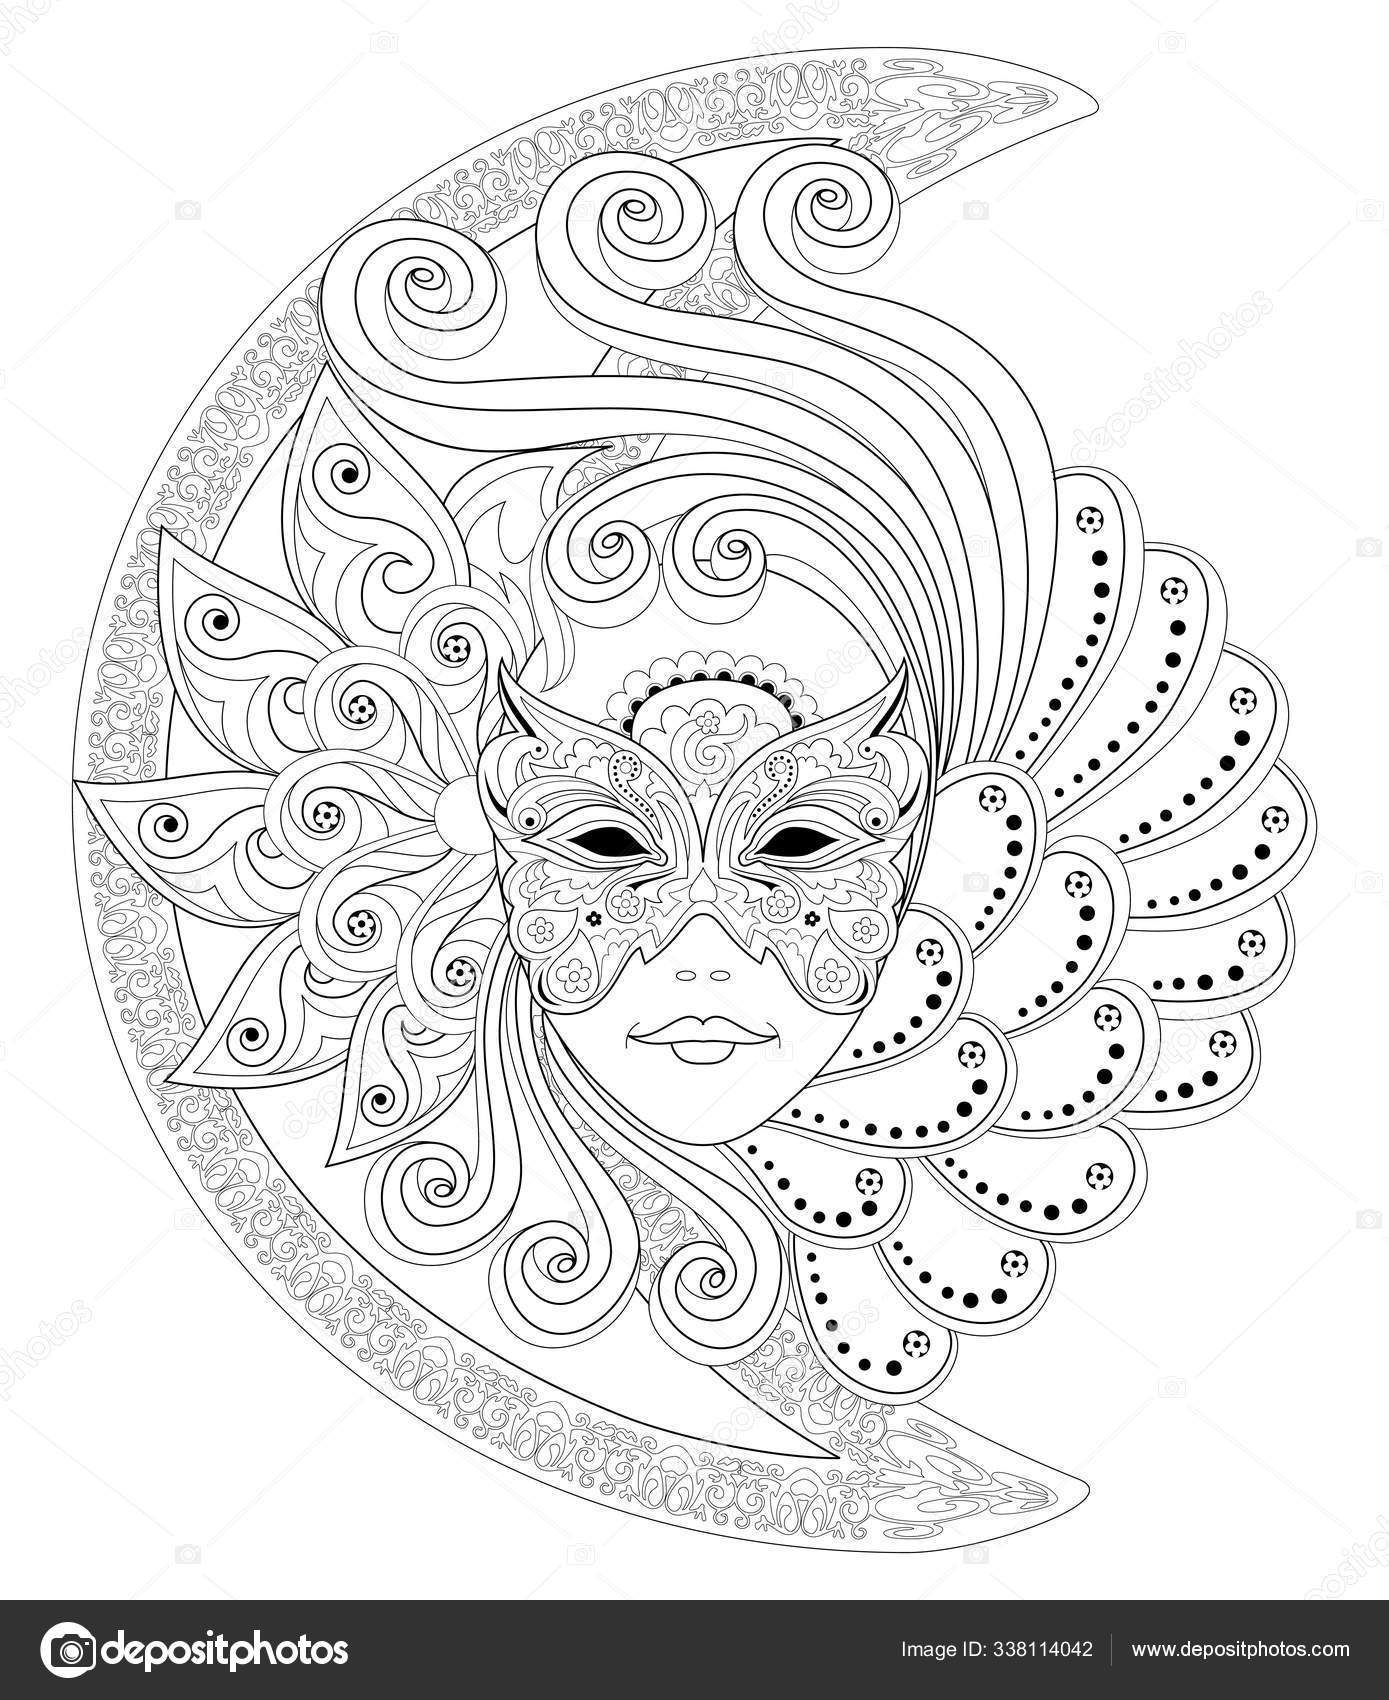 Fantasy Drawing Girl Face Beautiful Venetian Carnival Mask Black White Vector Image By C Nataljacernecka Vector Stock 338114042